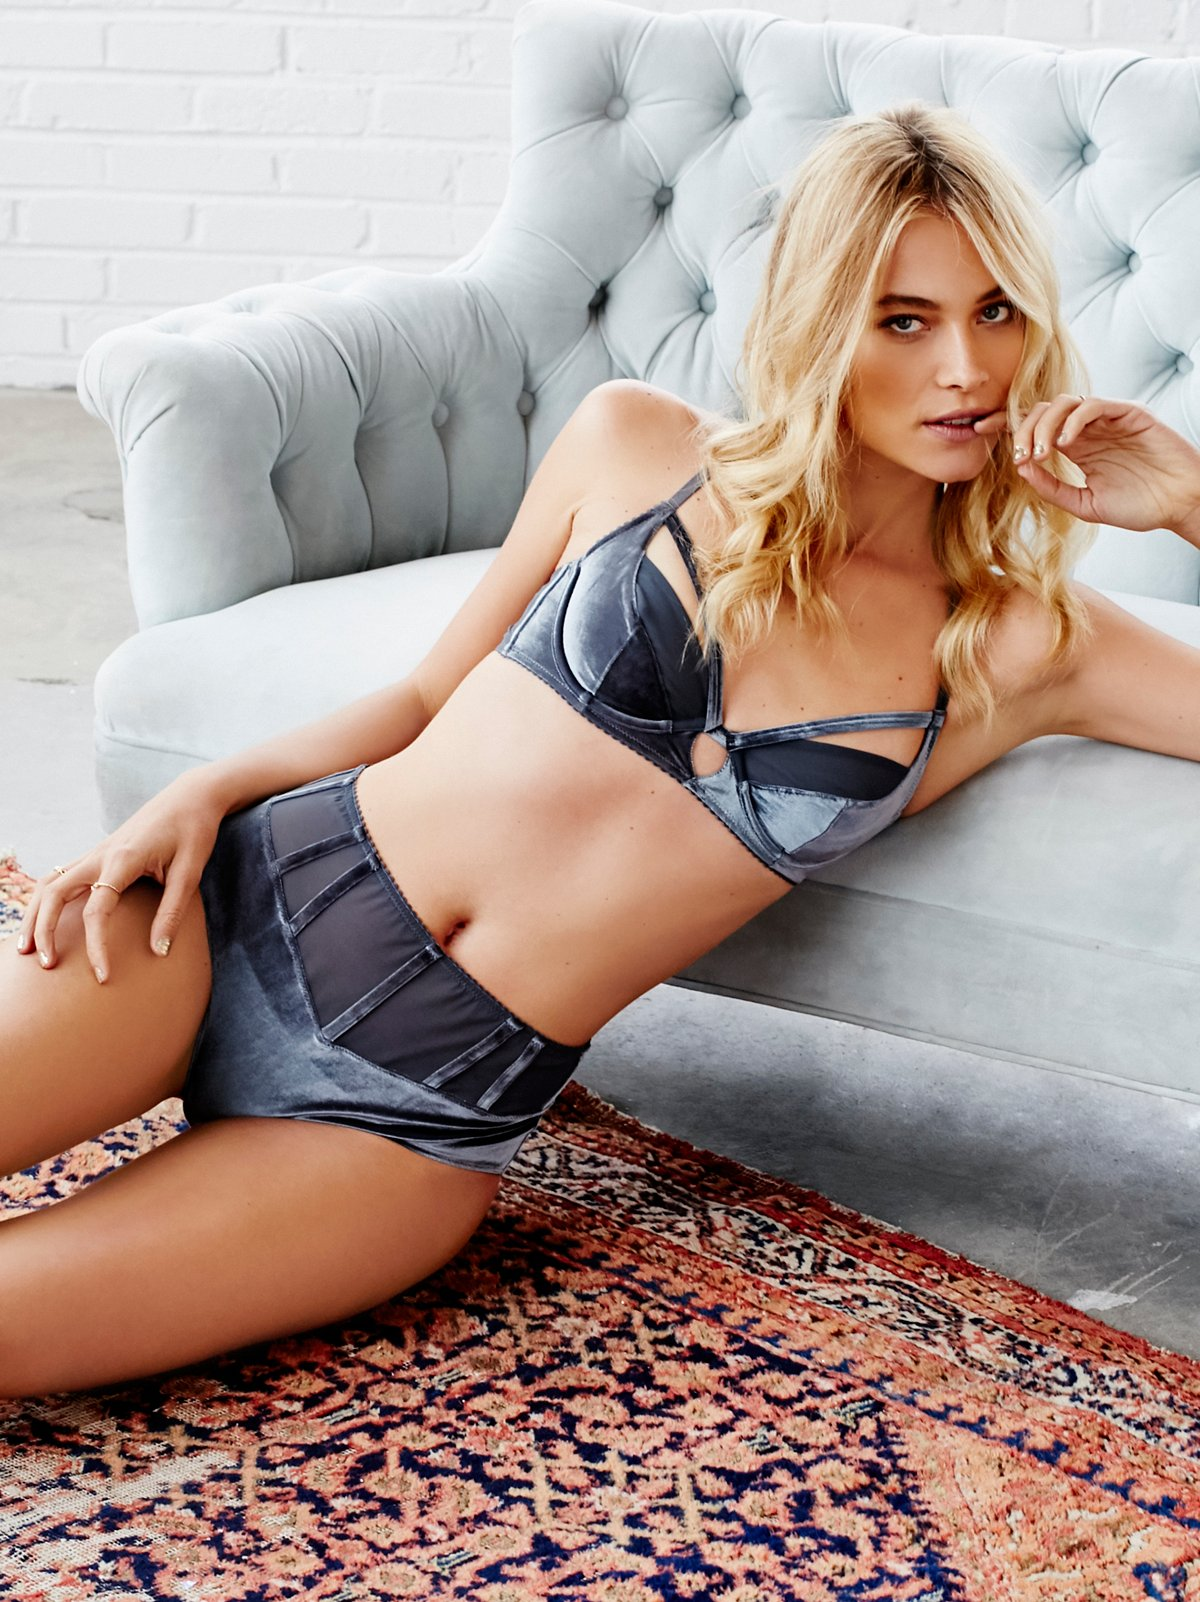 Free People Pillow Talk Hi Rise Undie $19.95 was $30.00